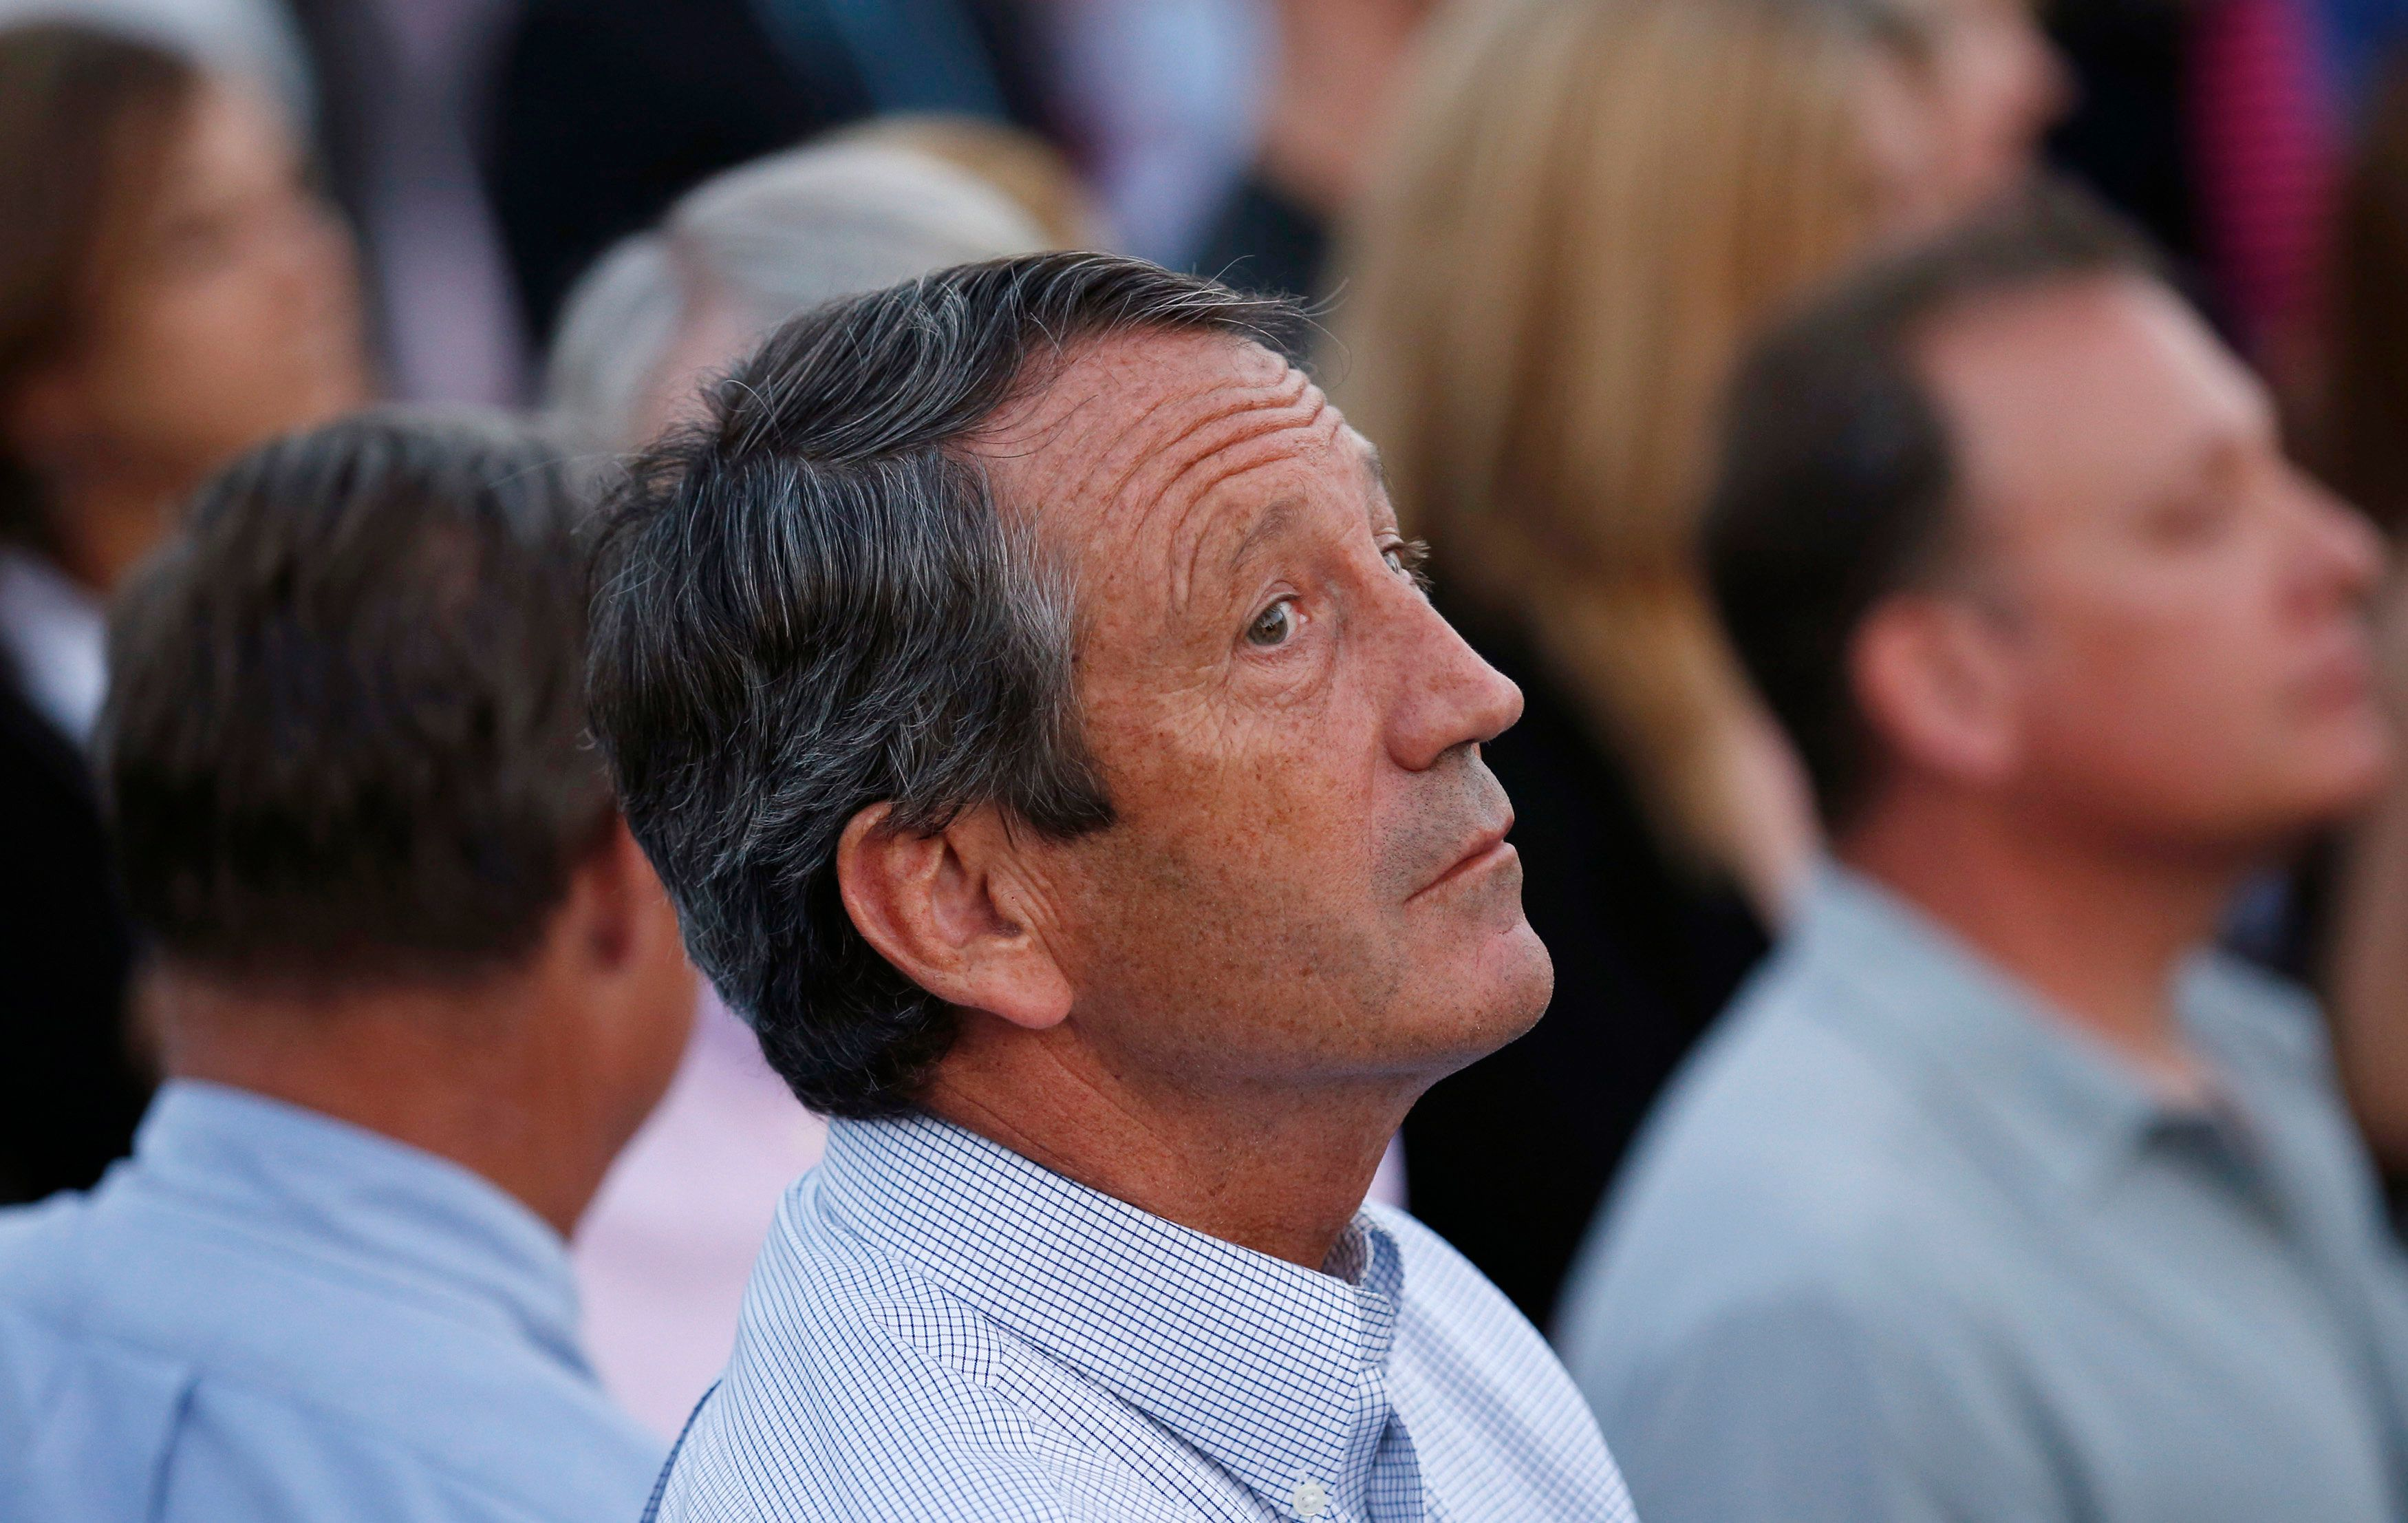 Rep. Mark Sanford (R-SC) looks up while attending a picnic for members of Congress hosted by U.S. President Barack Obama at the White House in Washington September 17, 2014. Sanford and his former wife have agreed to go to mediation over the latest spat arising from their divorce in 2010 after his extramarital affair while serving as the state's governor, a judge said on Monday.  REUTERS/Kevin Lamarque  (UNITED STATES - Tags: POLITICS)